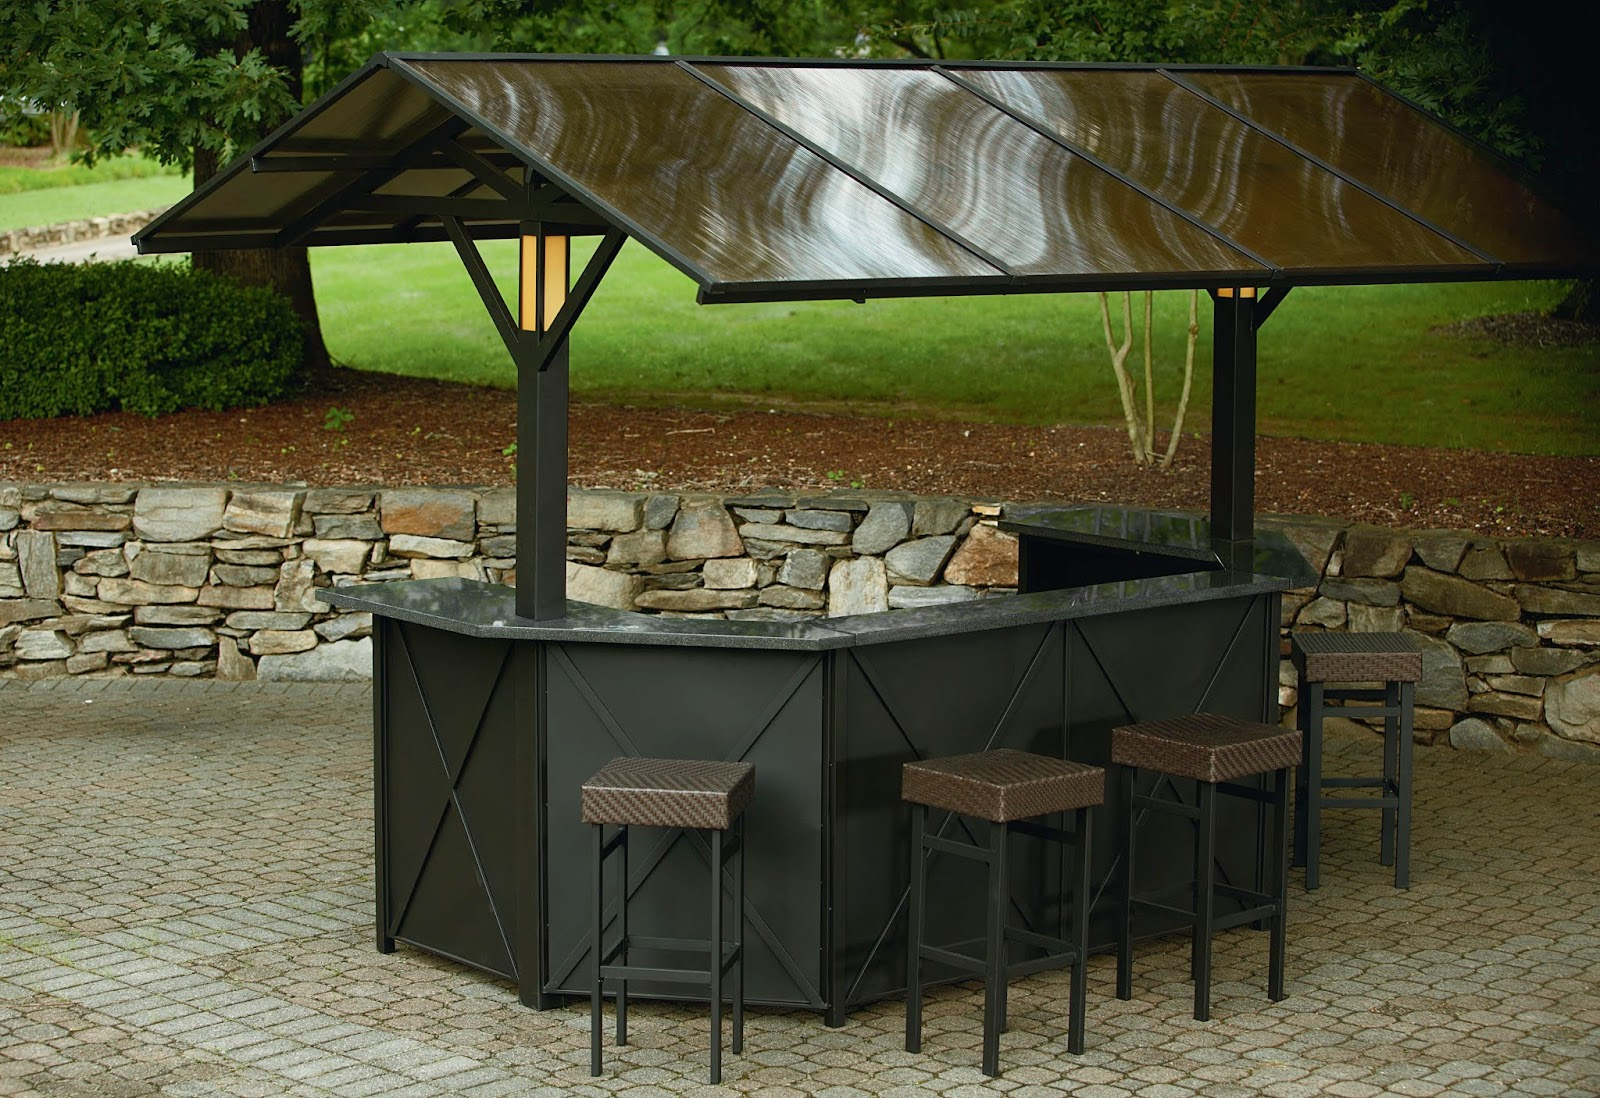 Outdoor patio gazebo ideas for Outdoor furniture gazebo